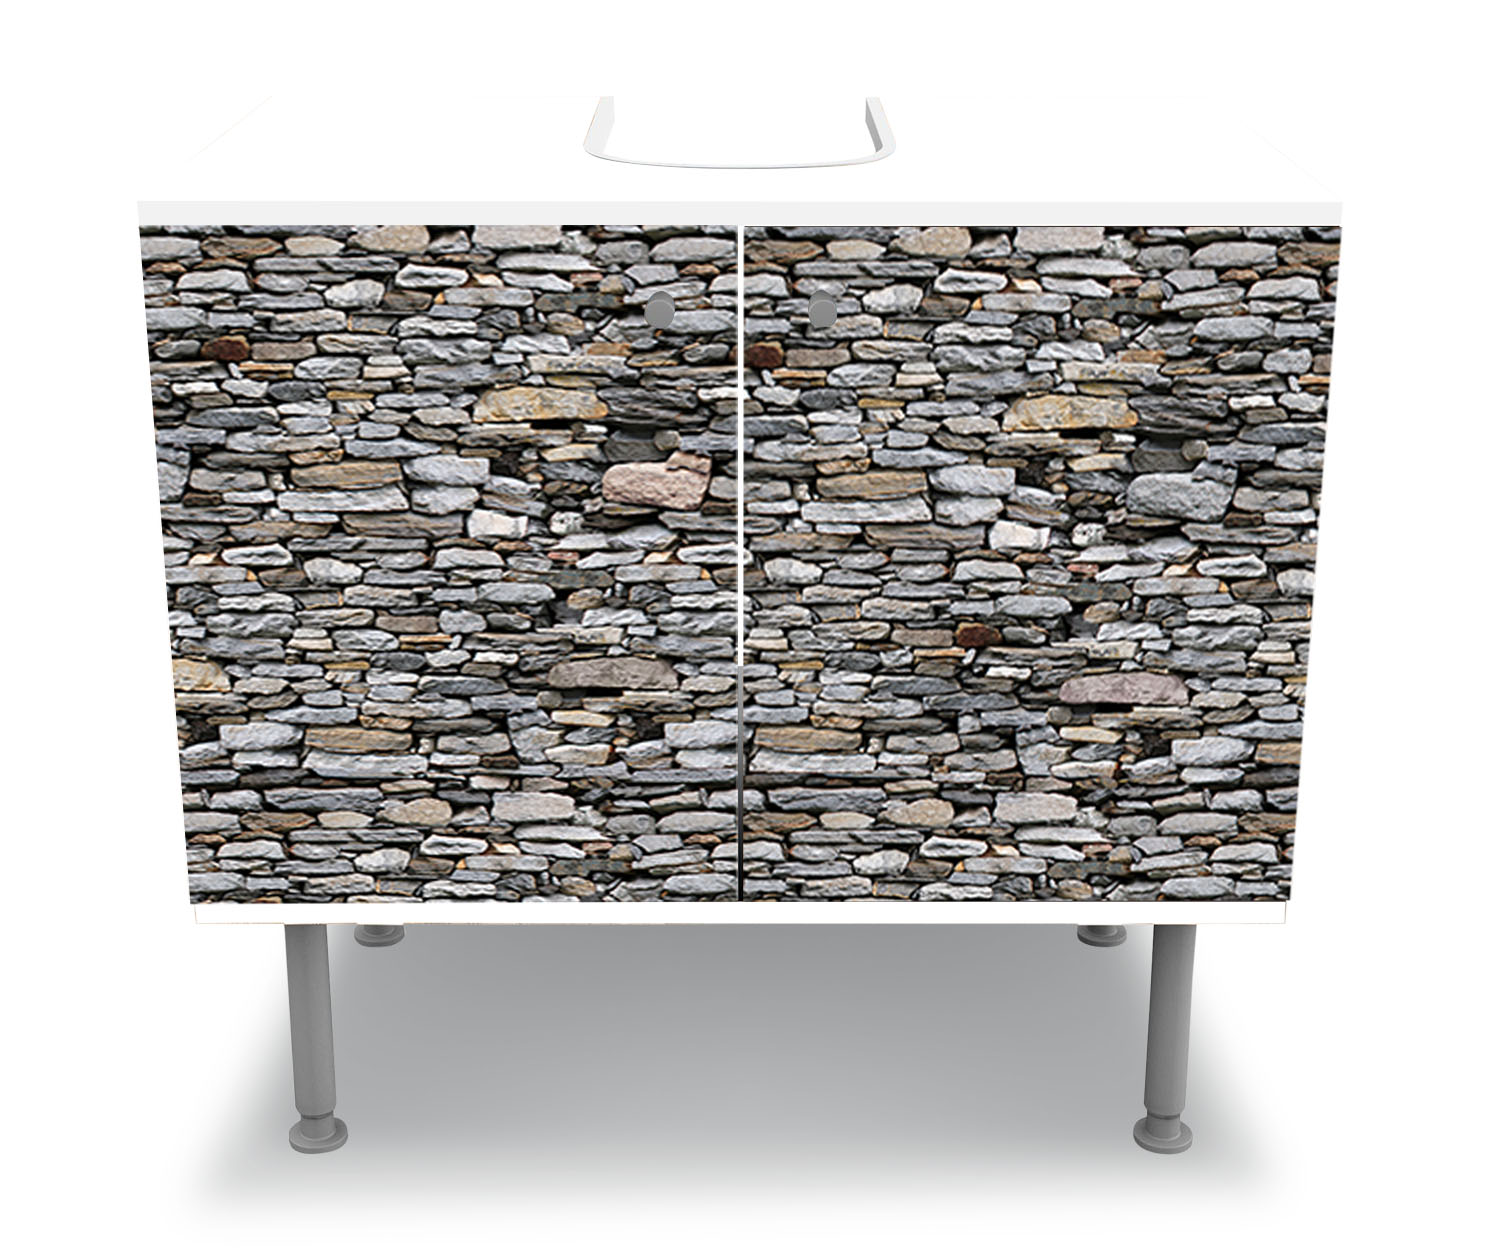 badunterschrank steinmauer grau designschrank bad m0022 ebay. Black Bedroom Furniture Sets. Home Design Ideas